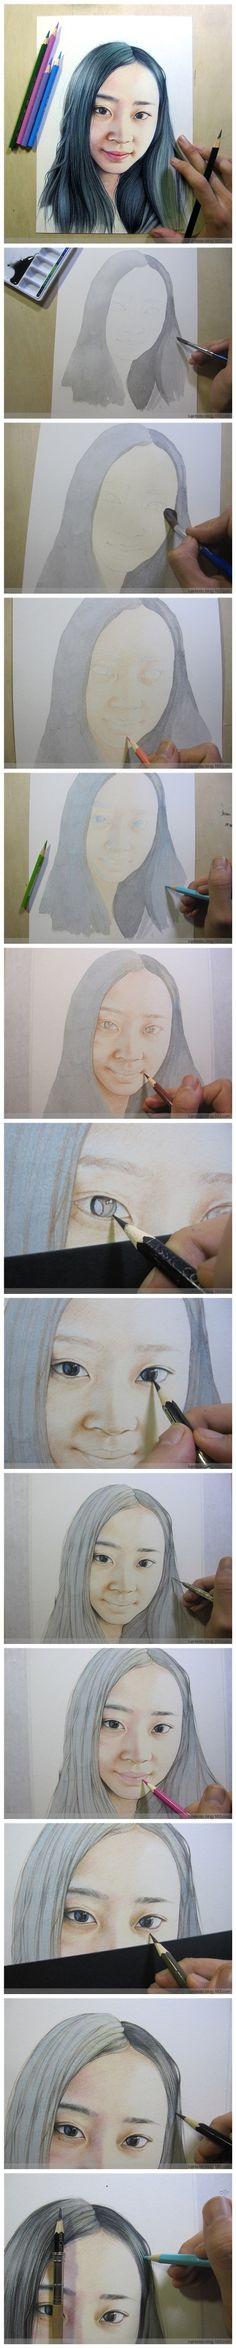 Realistic girl painting/drawing with instructions.